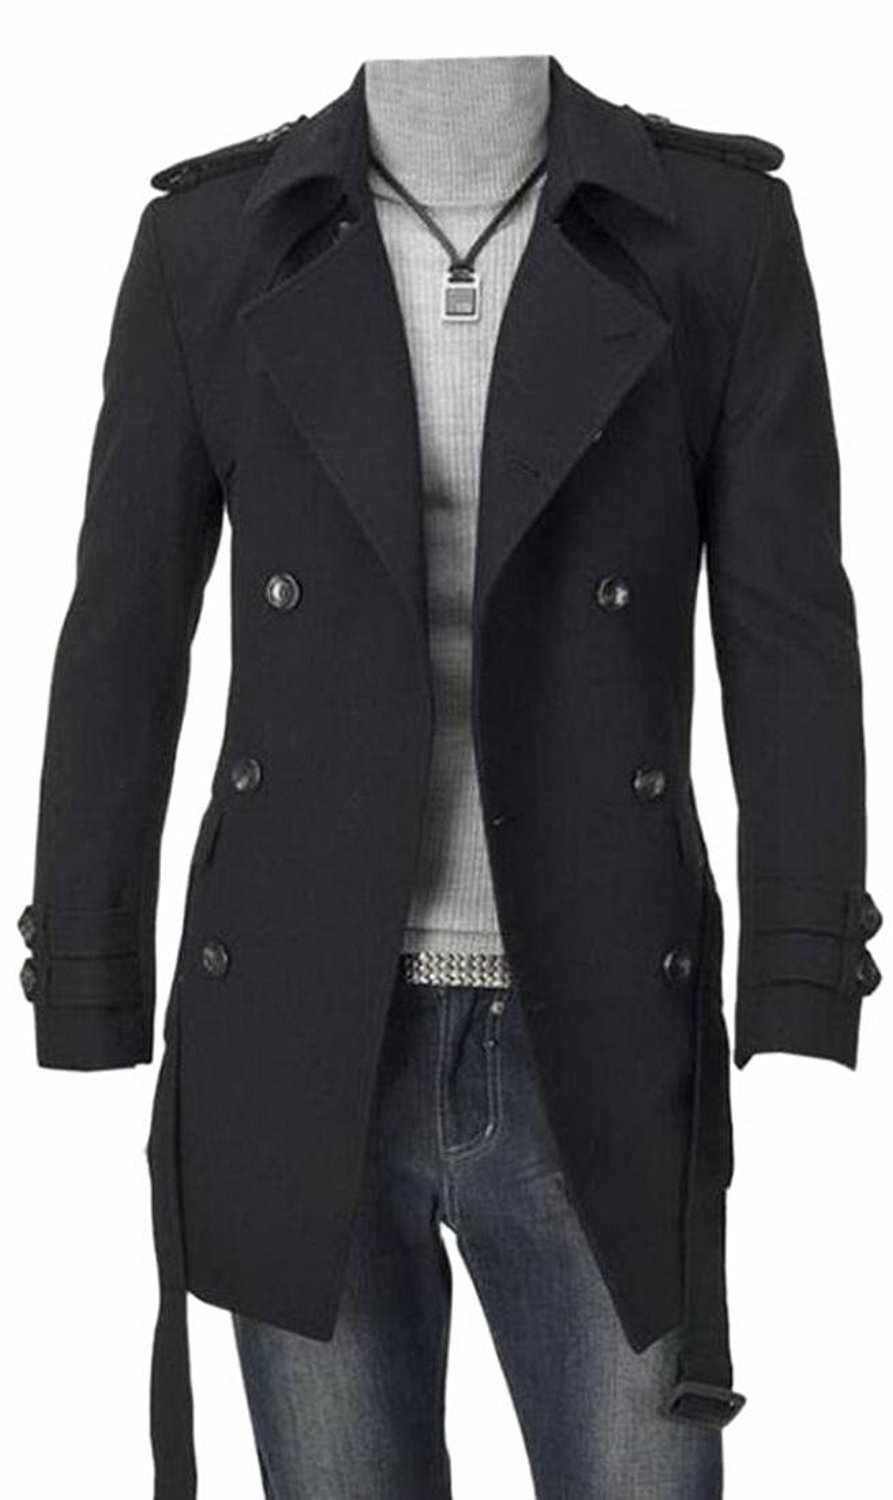 Yayu Mens Trim-Fit Winter Double-breasted Belted Trench Coat Outwear